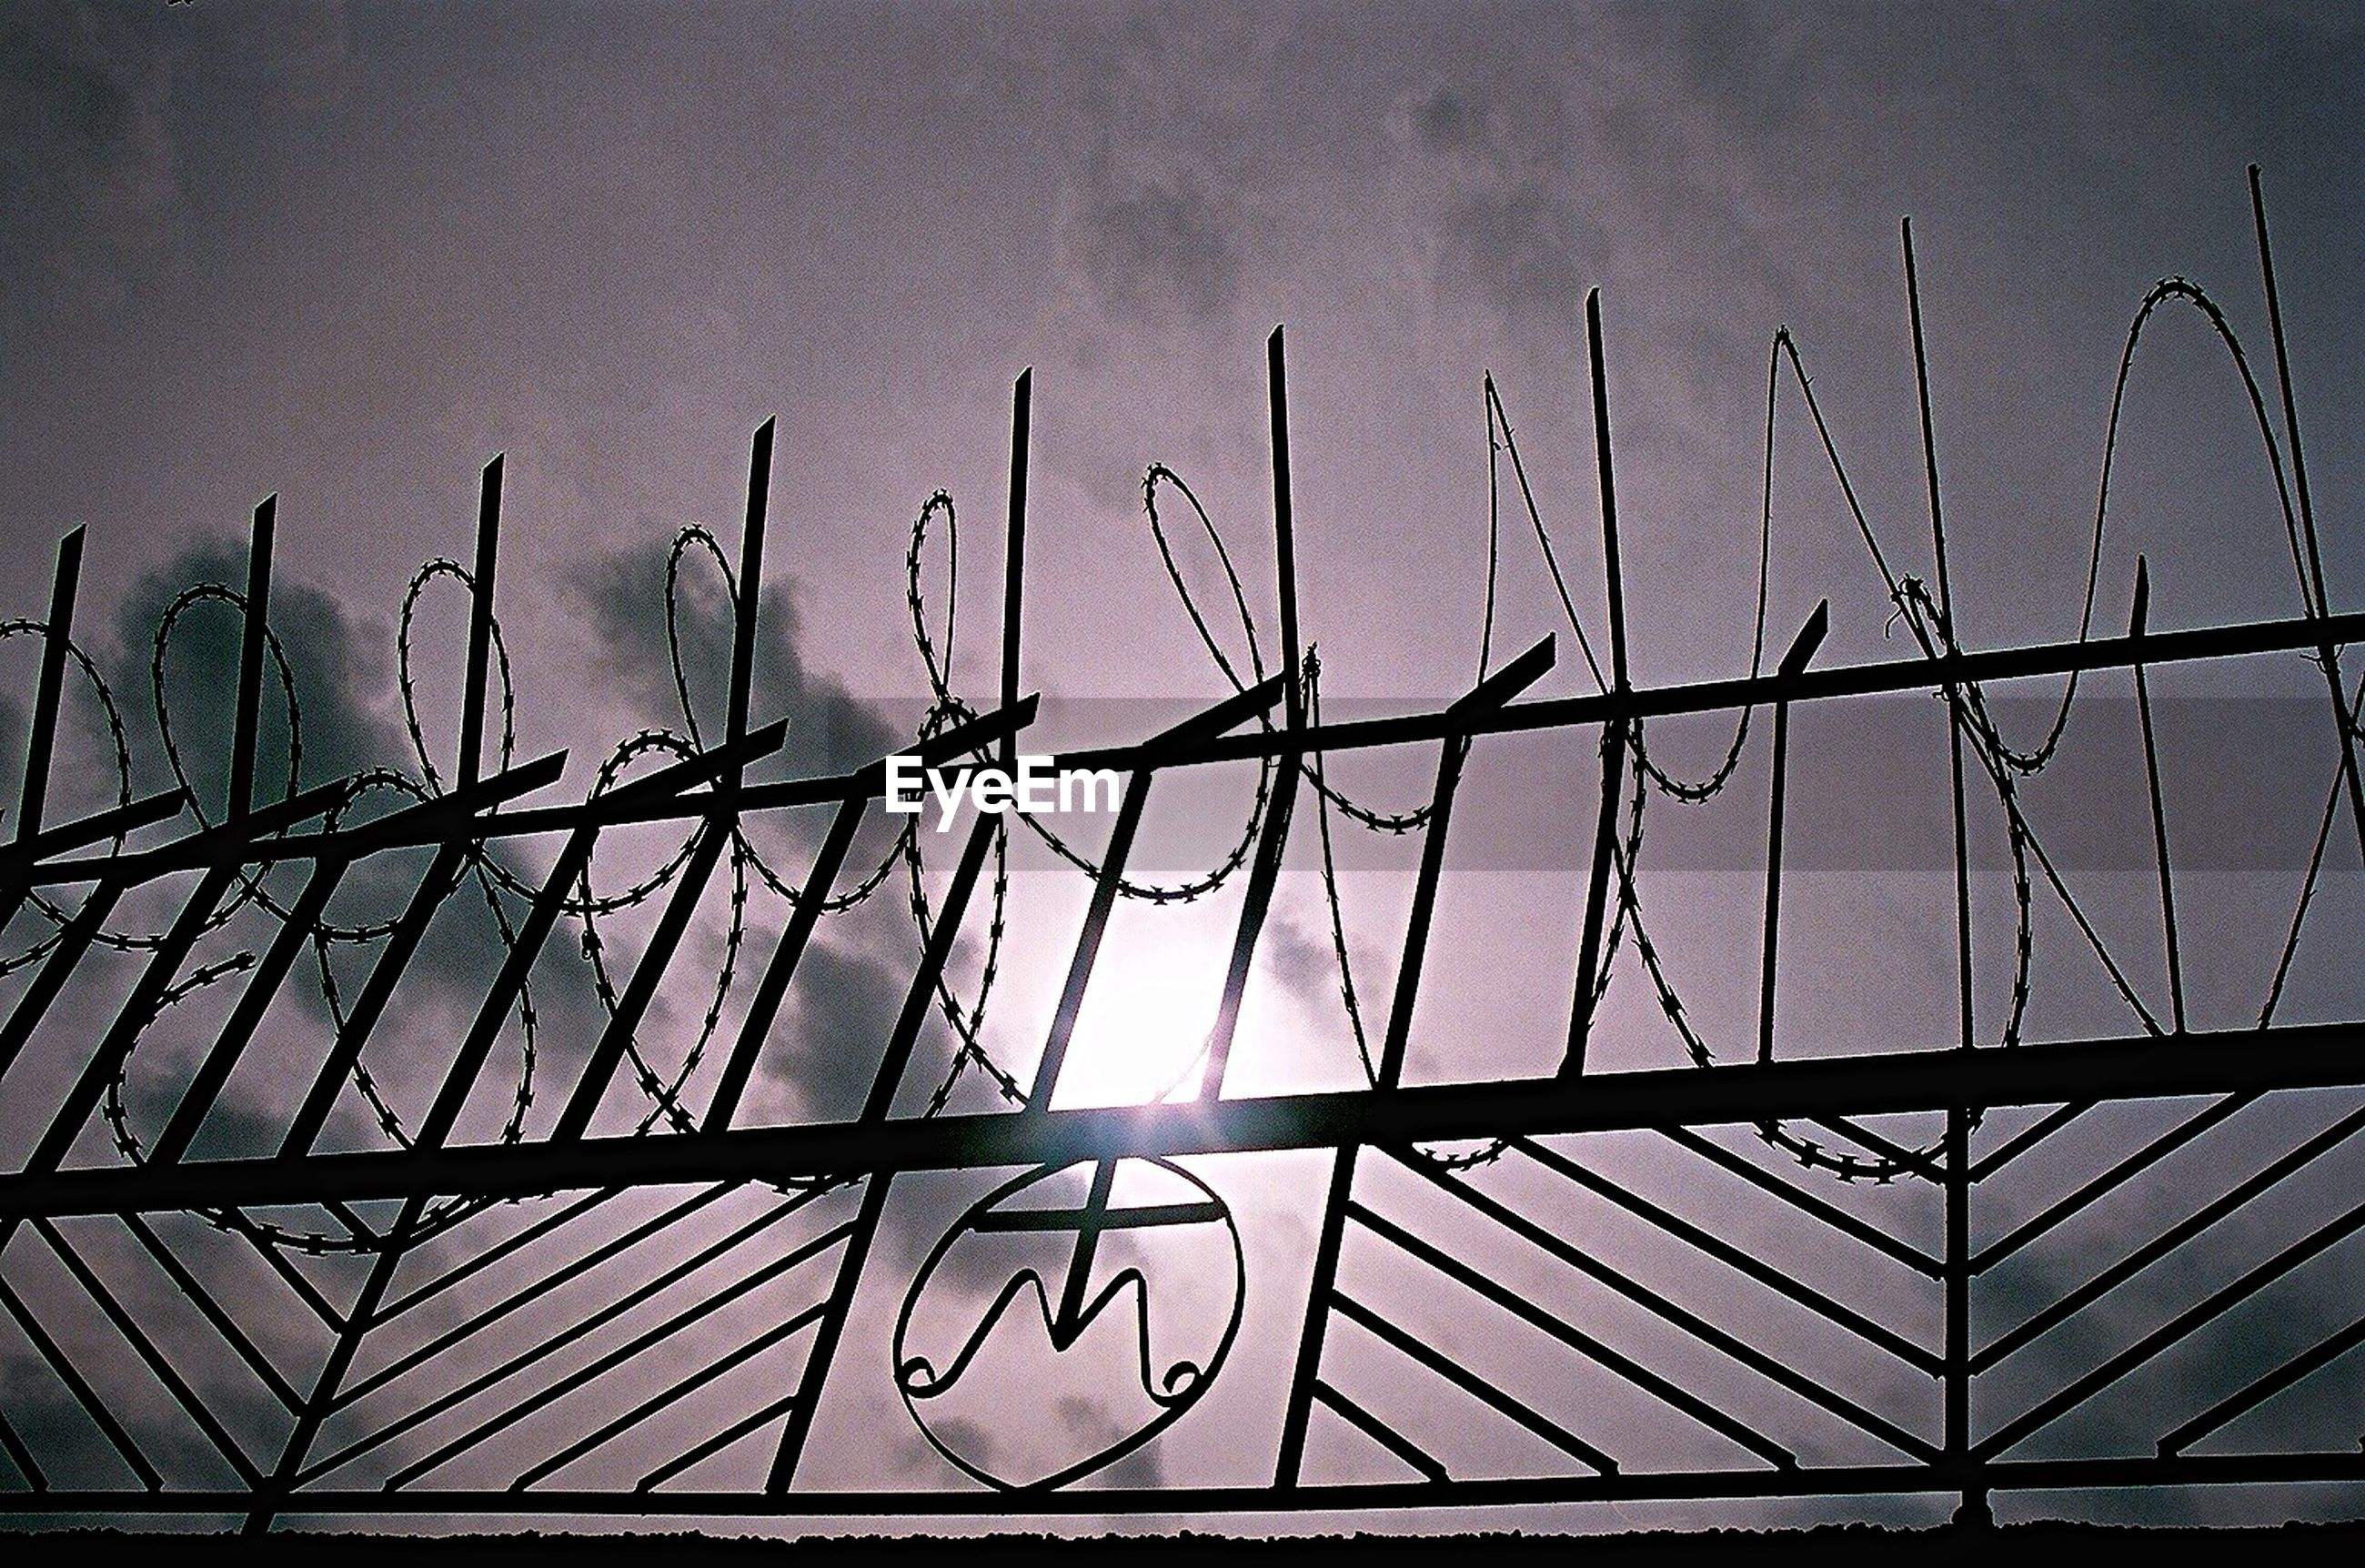 text, metal, low angle view, fence, western script, communication, barbed wire, safety, chainlink fence, protection, close-up, metallic, sky, no people, outdoors, day, pattern, security, connection, bird